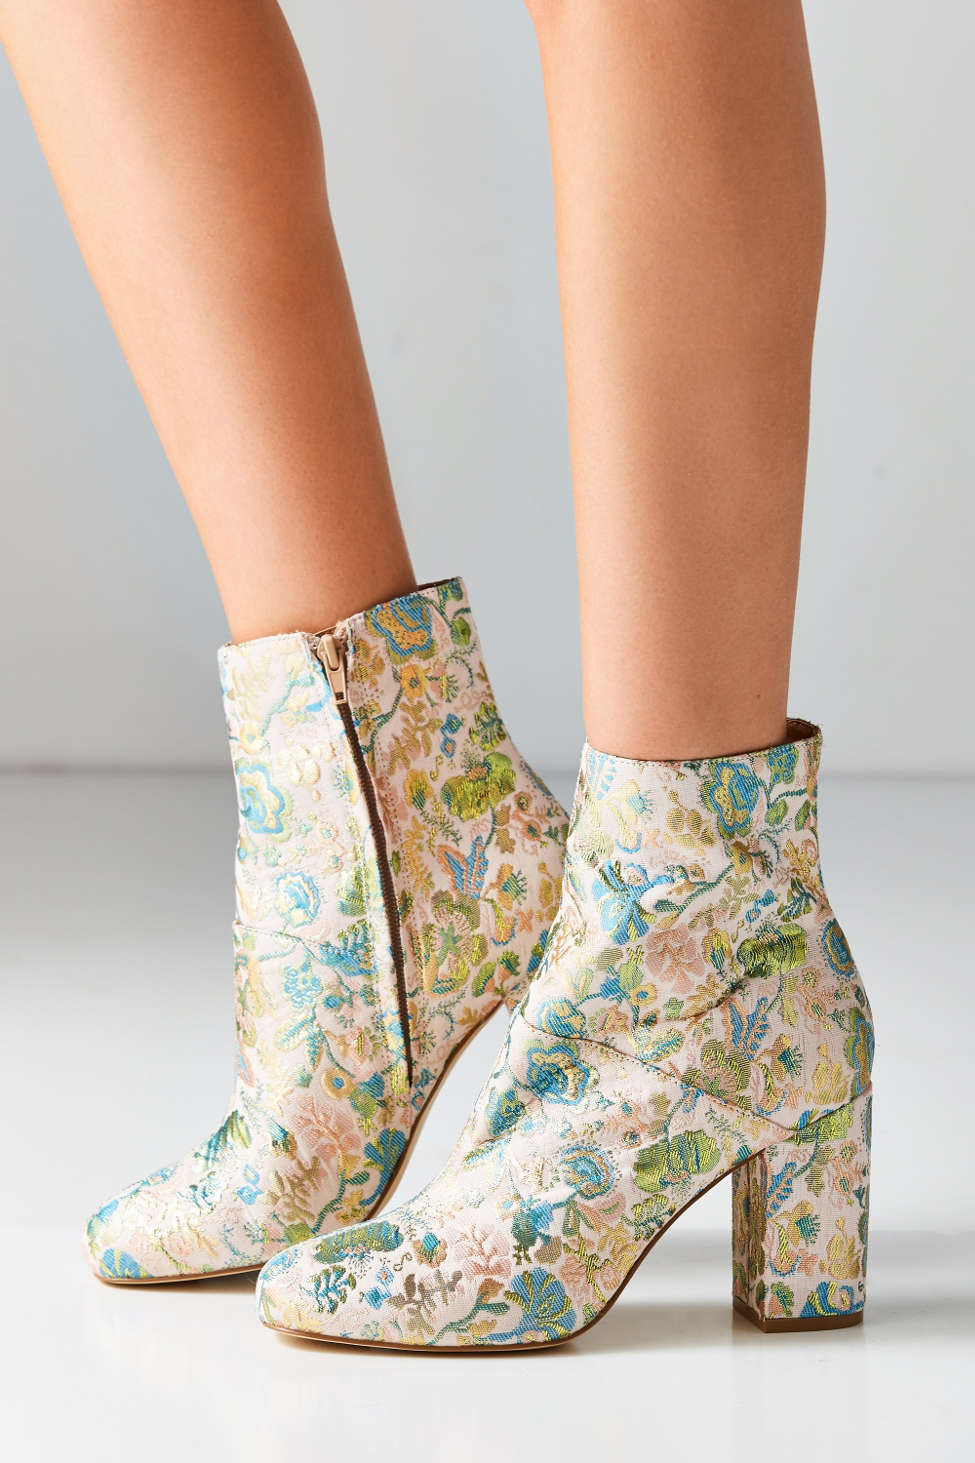 http://www.urbanoutfitters.com/urban/catalog/productdetail.jsp?id=40192551&category=W_SHOES_BOOTS